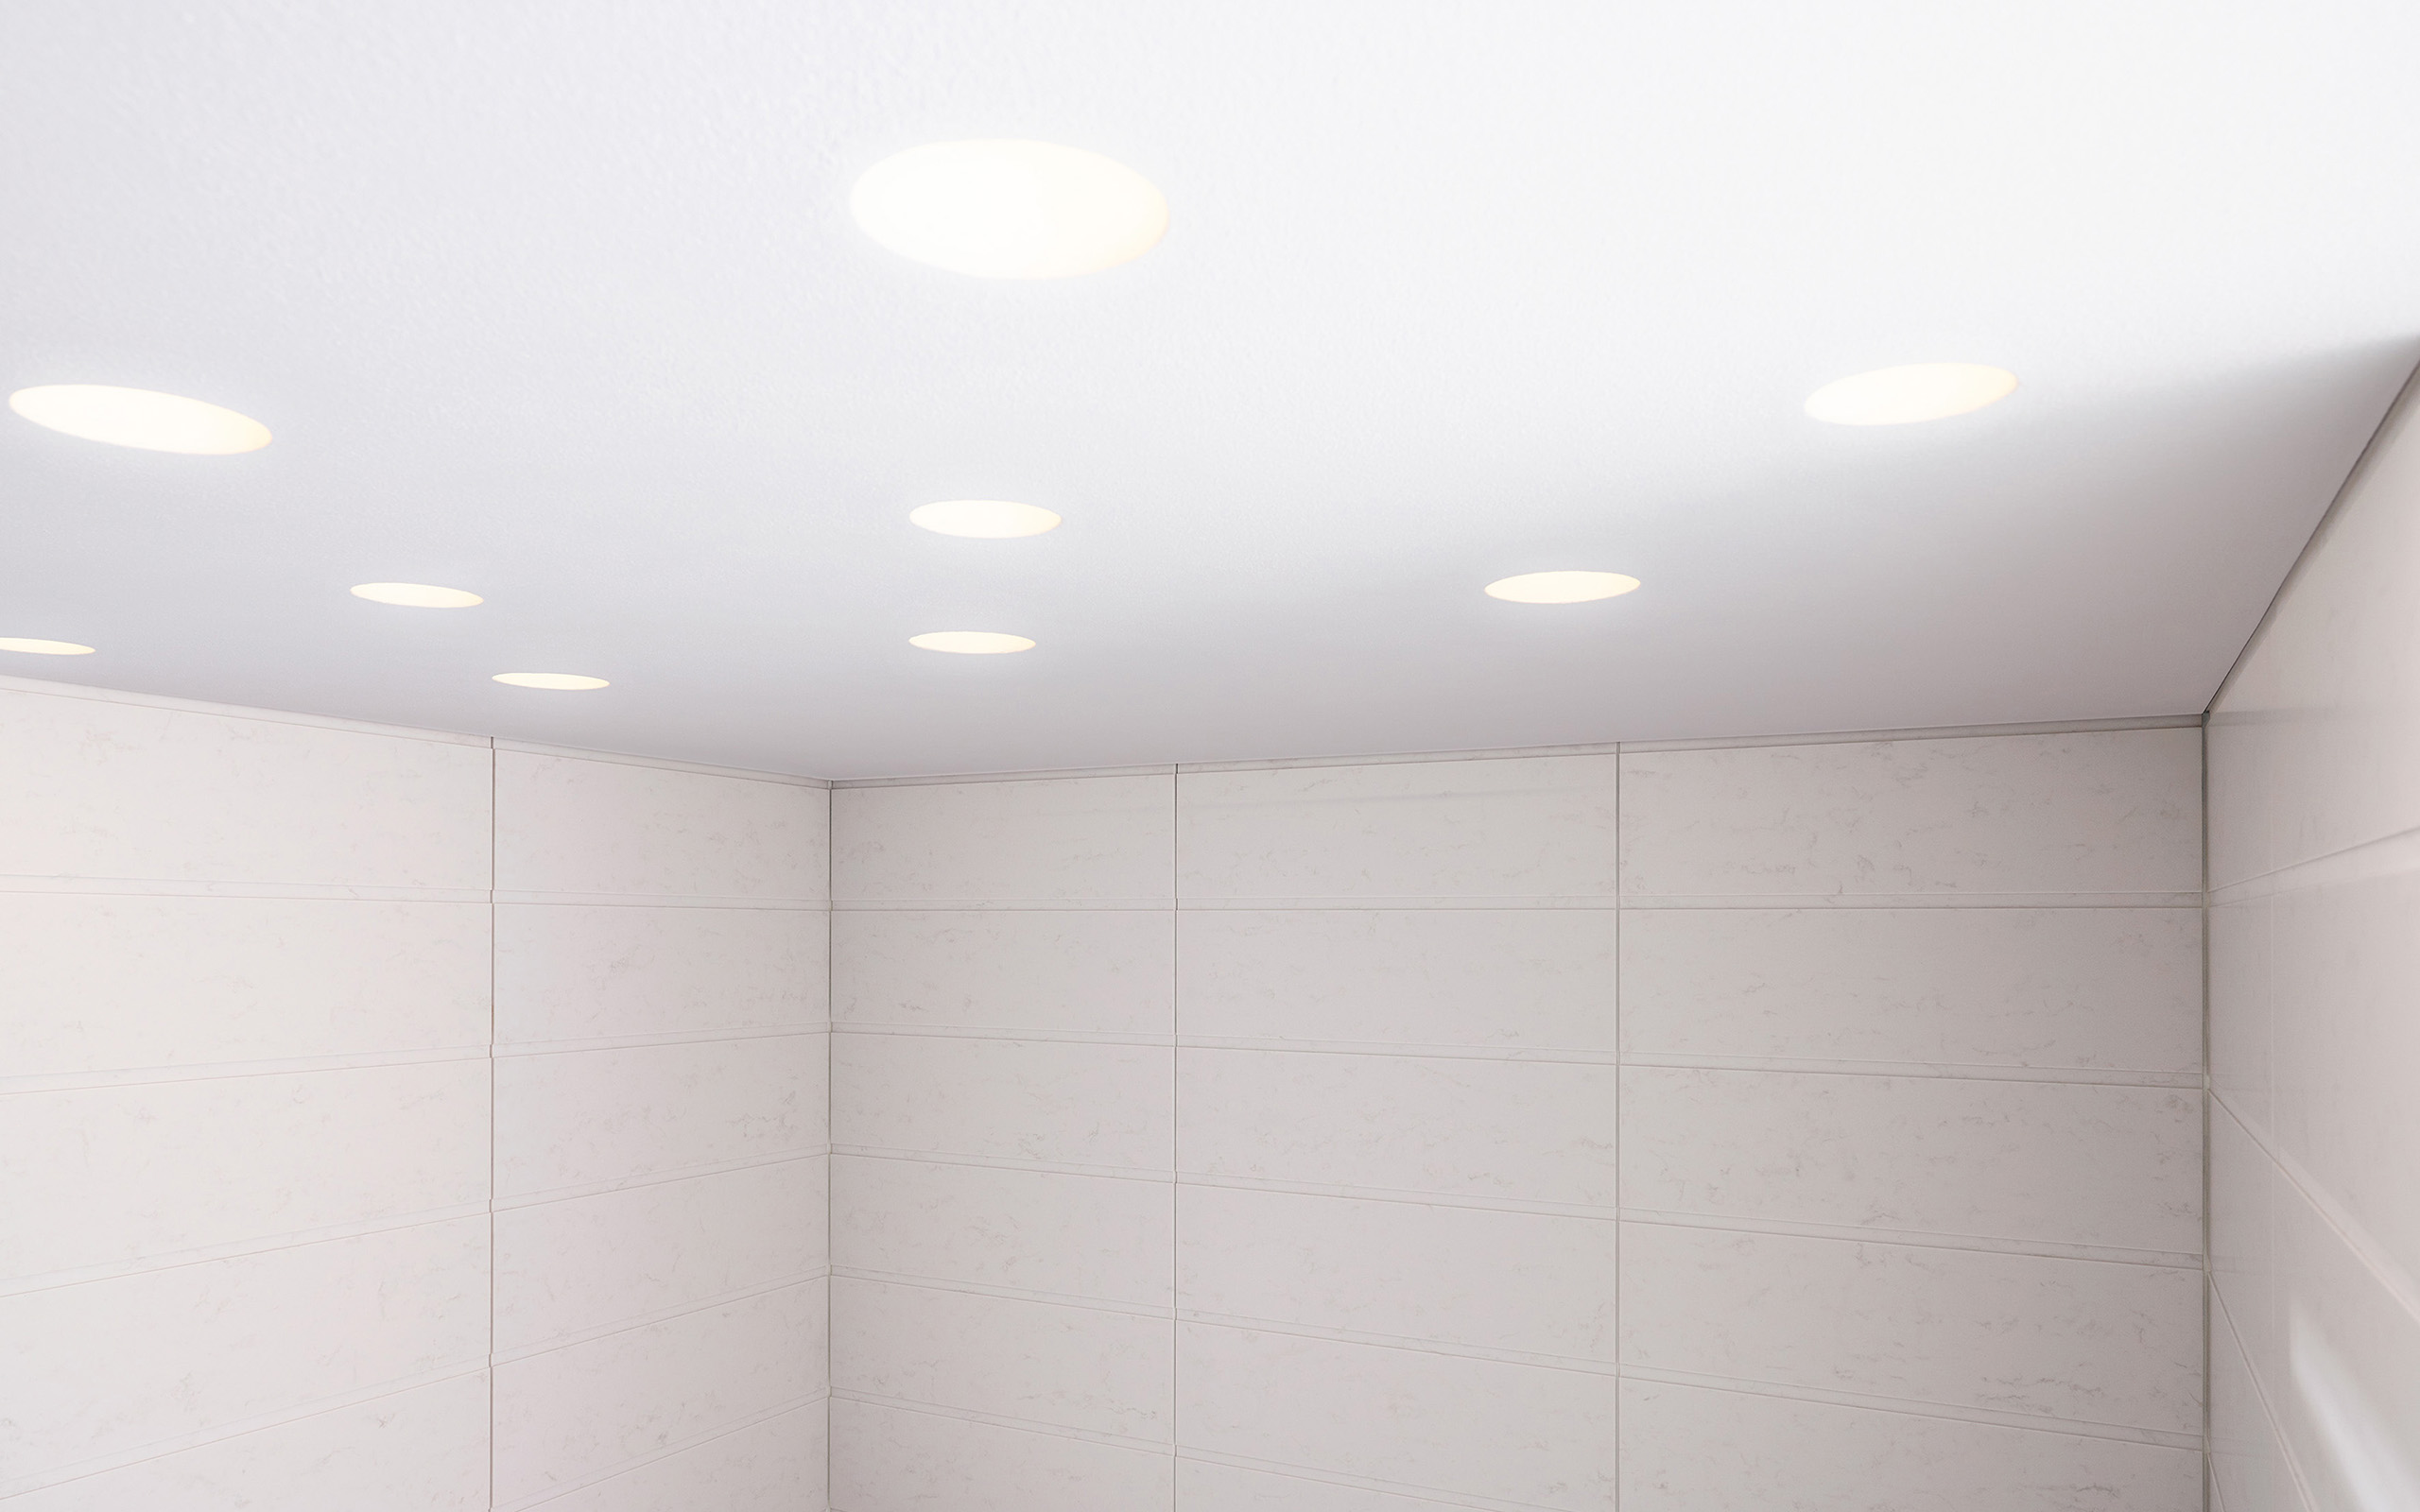 Steam Shower Ceiling Material Boatylicious Org